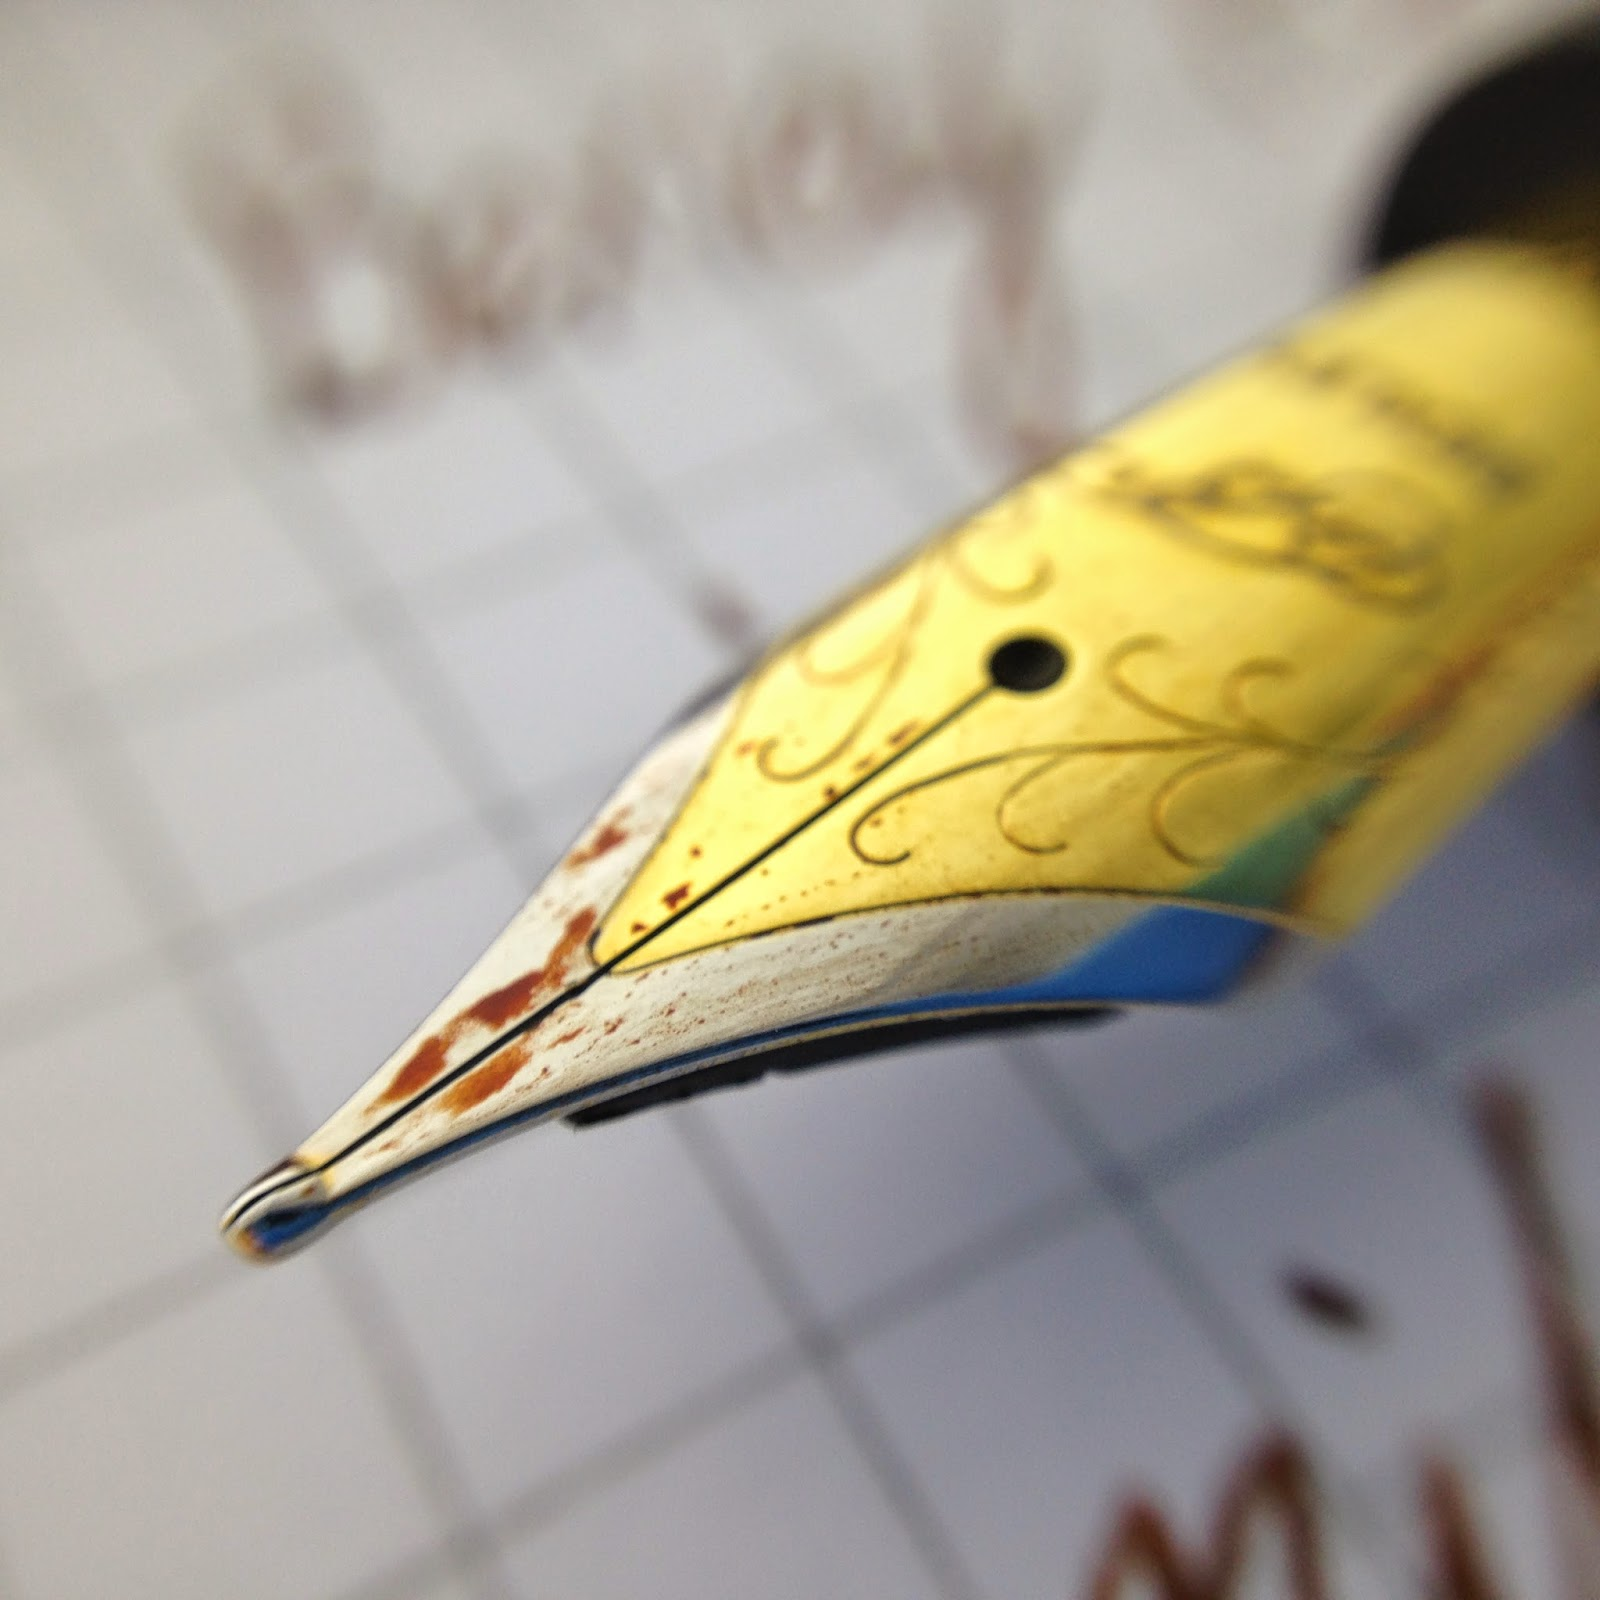 Bexley Phoenix Fountain Pen Review